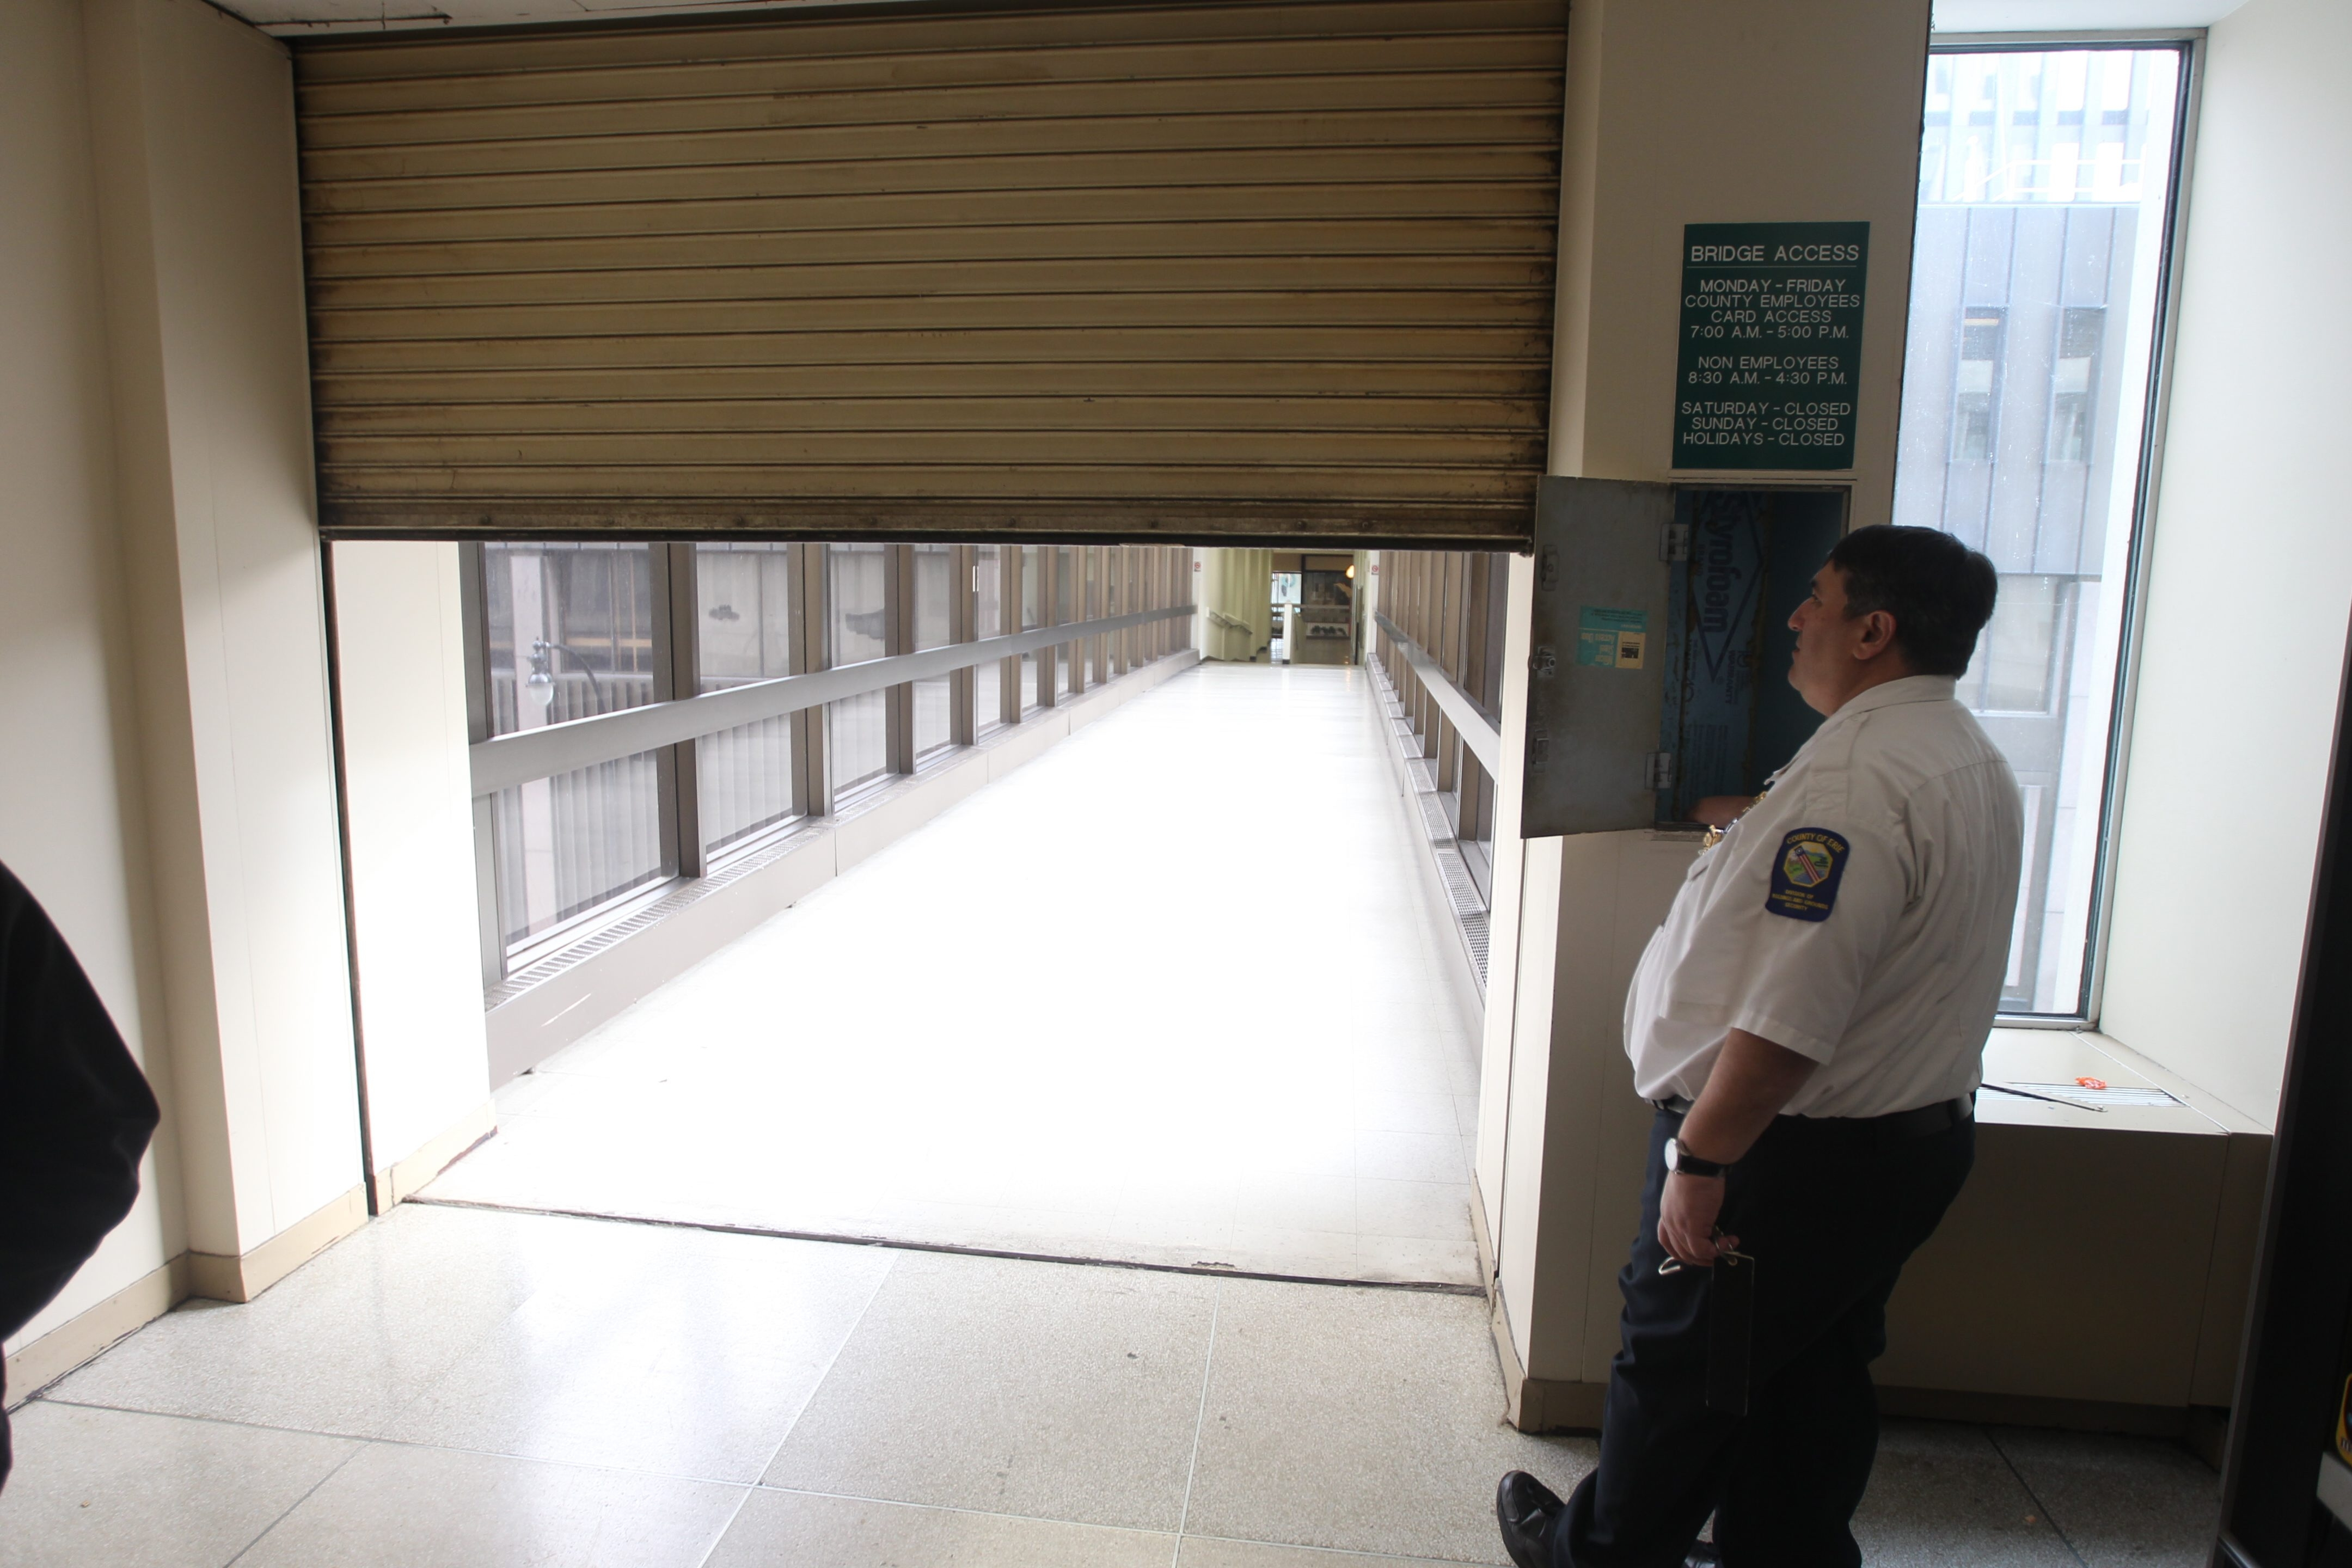 Erie County Building and Grounds Supervisor Robert Bruno closes the door to the pedestrian bridge walkway between the Rath Building and the Main Place Mall on Dec. 3.